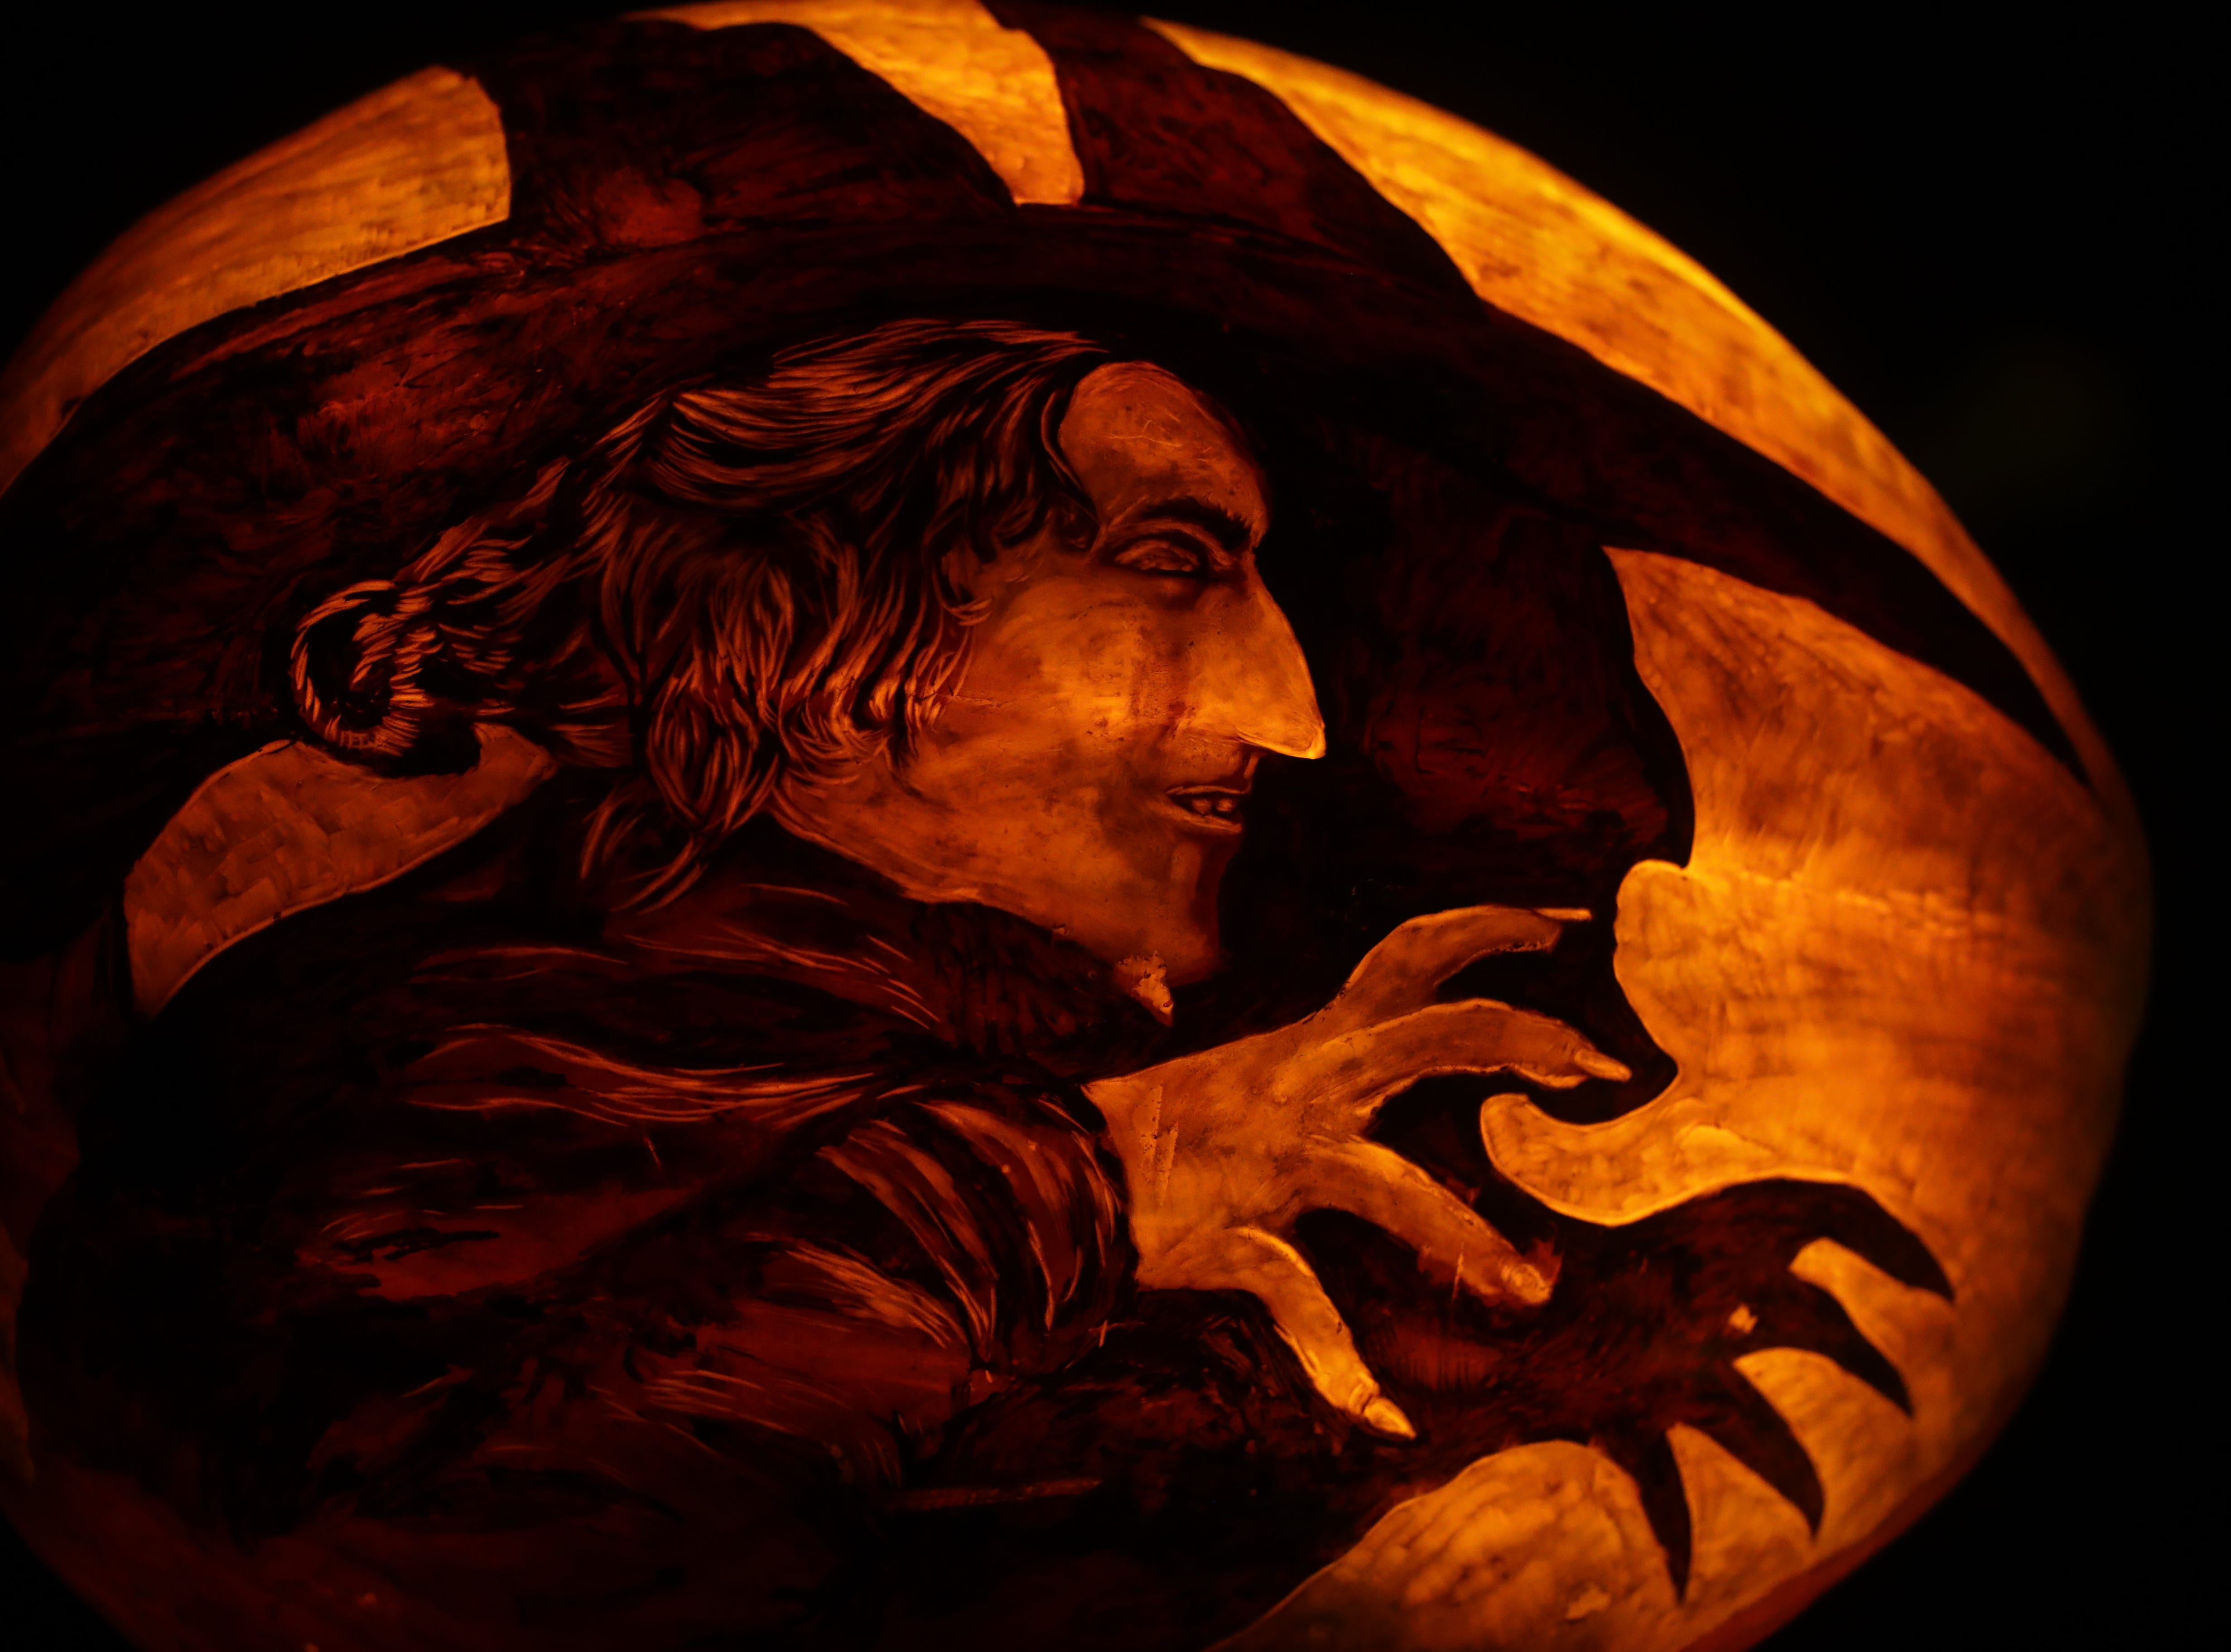 The wicked witch from the Wizard of Oz appears on a pumpkin at this year's Jack O' Lantern Spectacular. Oct. 9, 2018